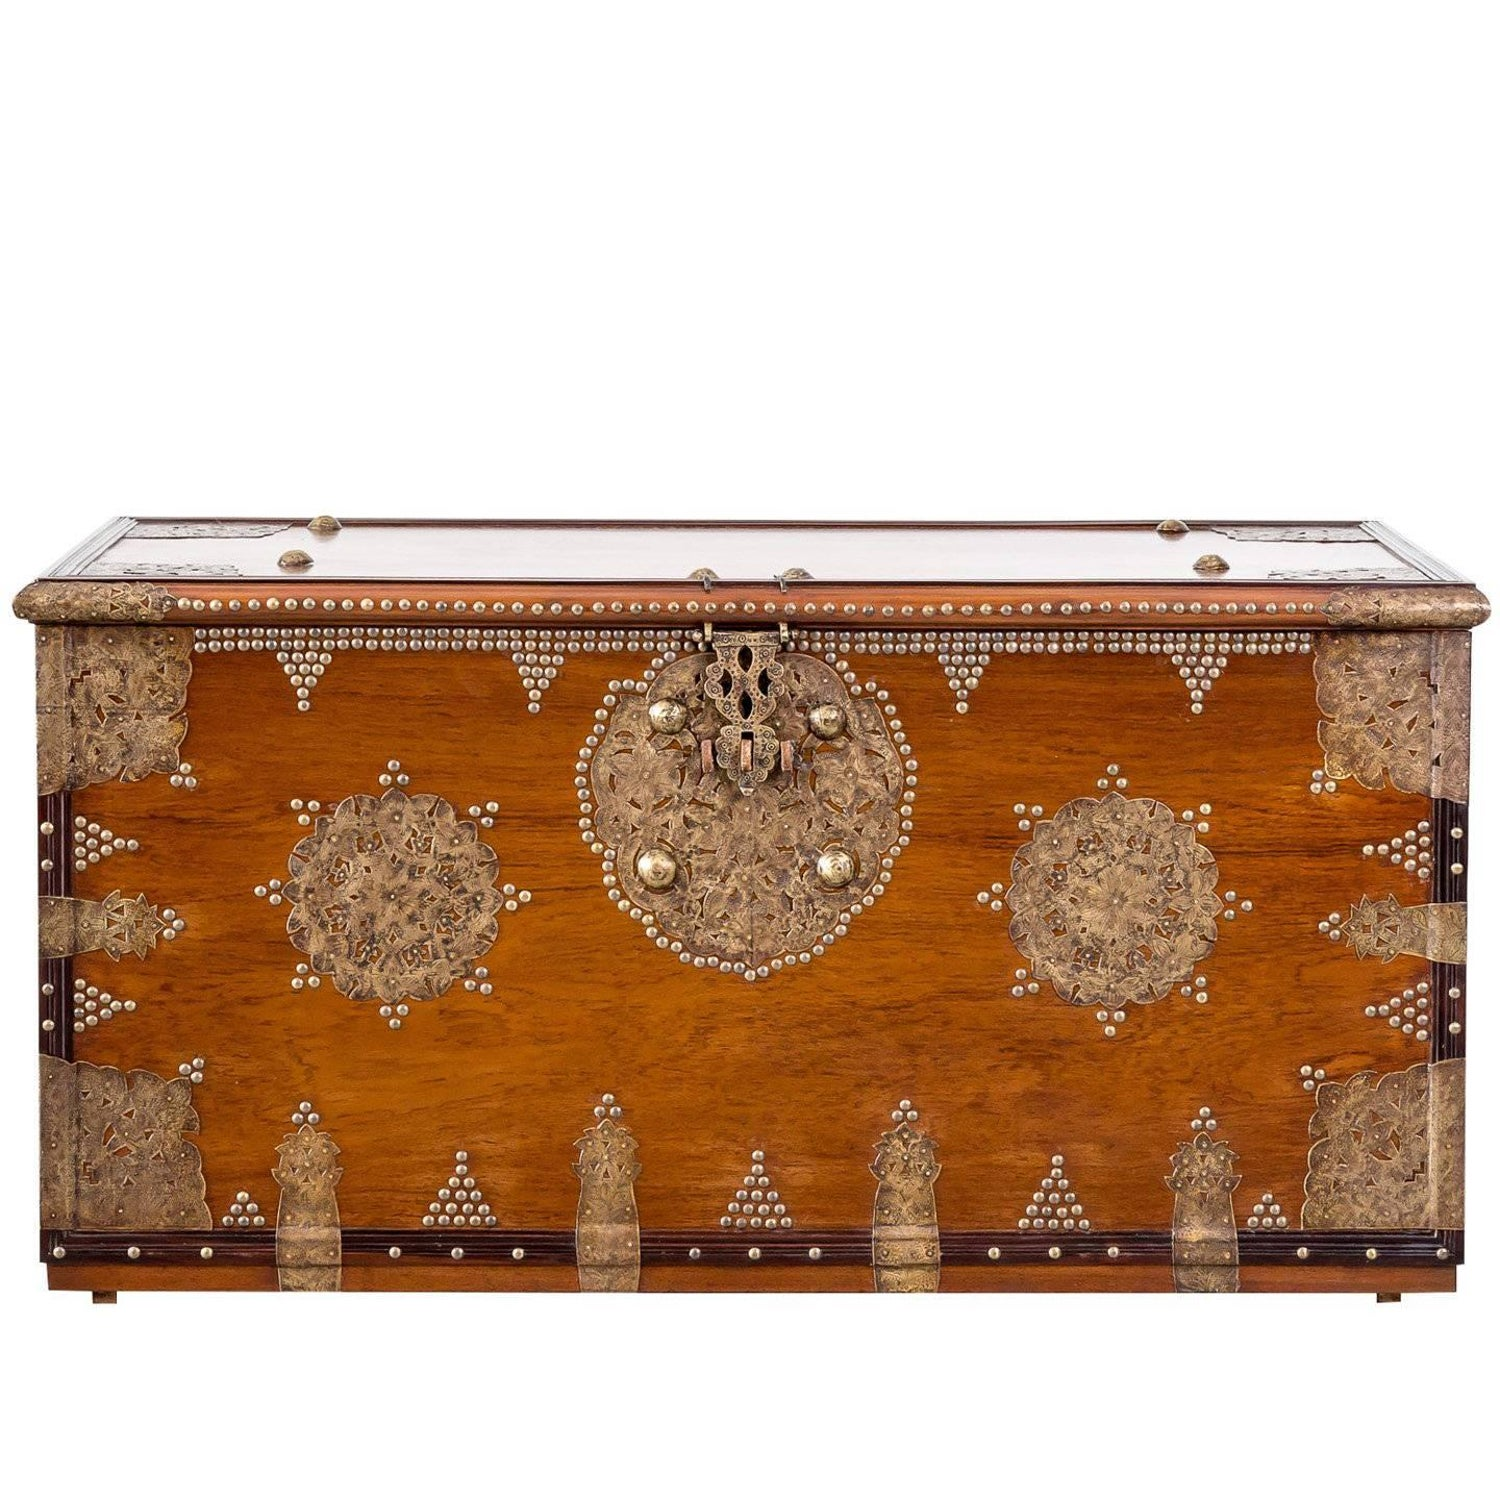 Antique and Vintage Blanket Chests 774 For Sale at 1stdibs